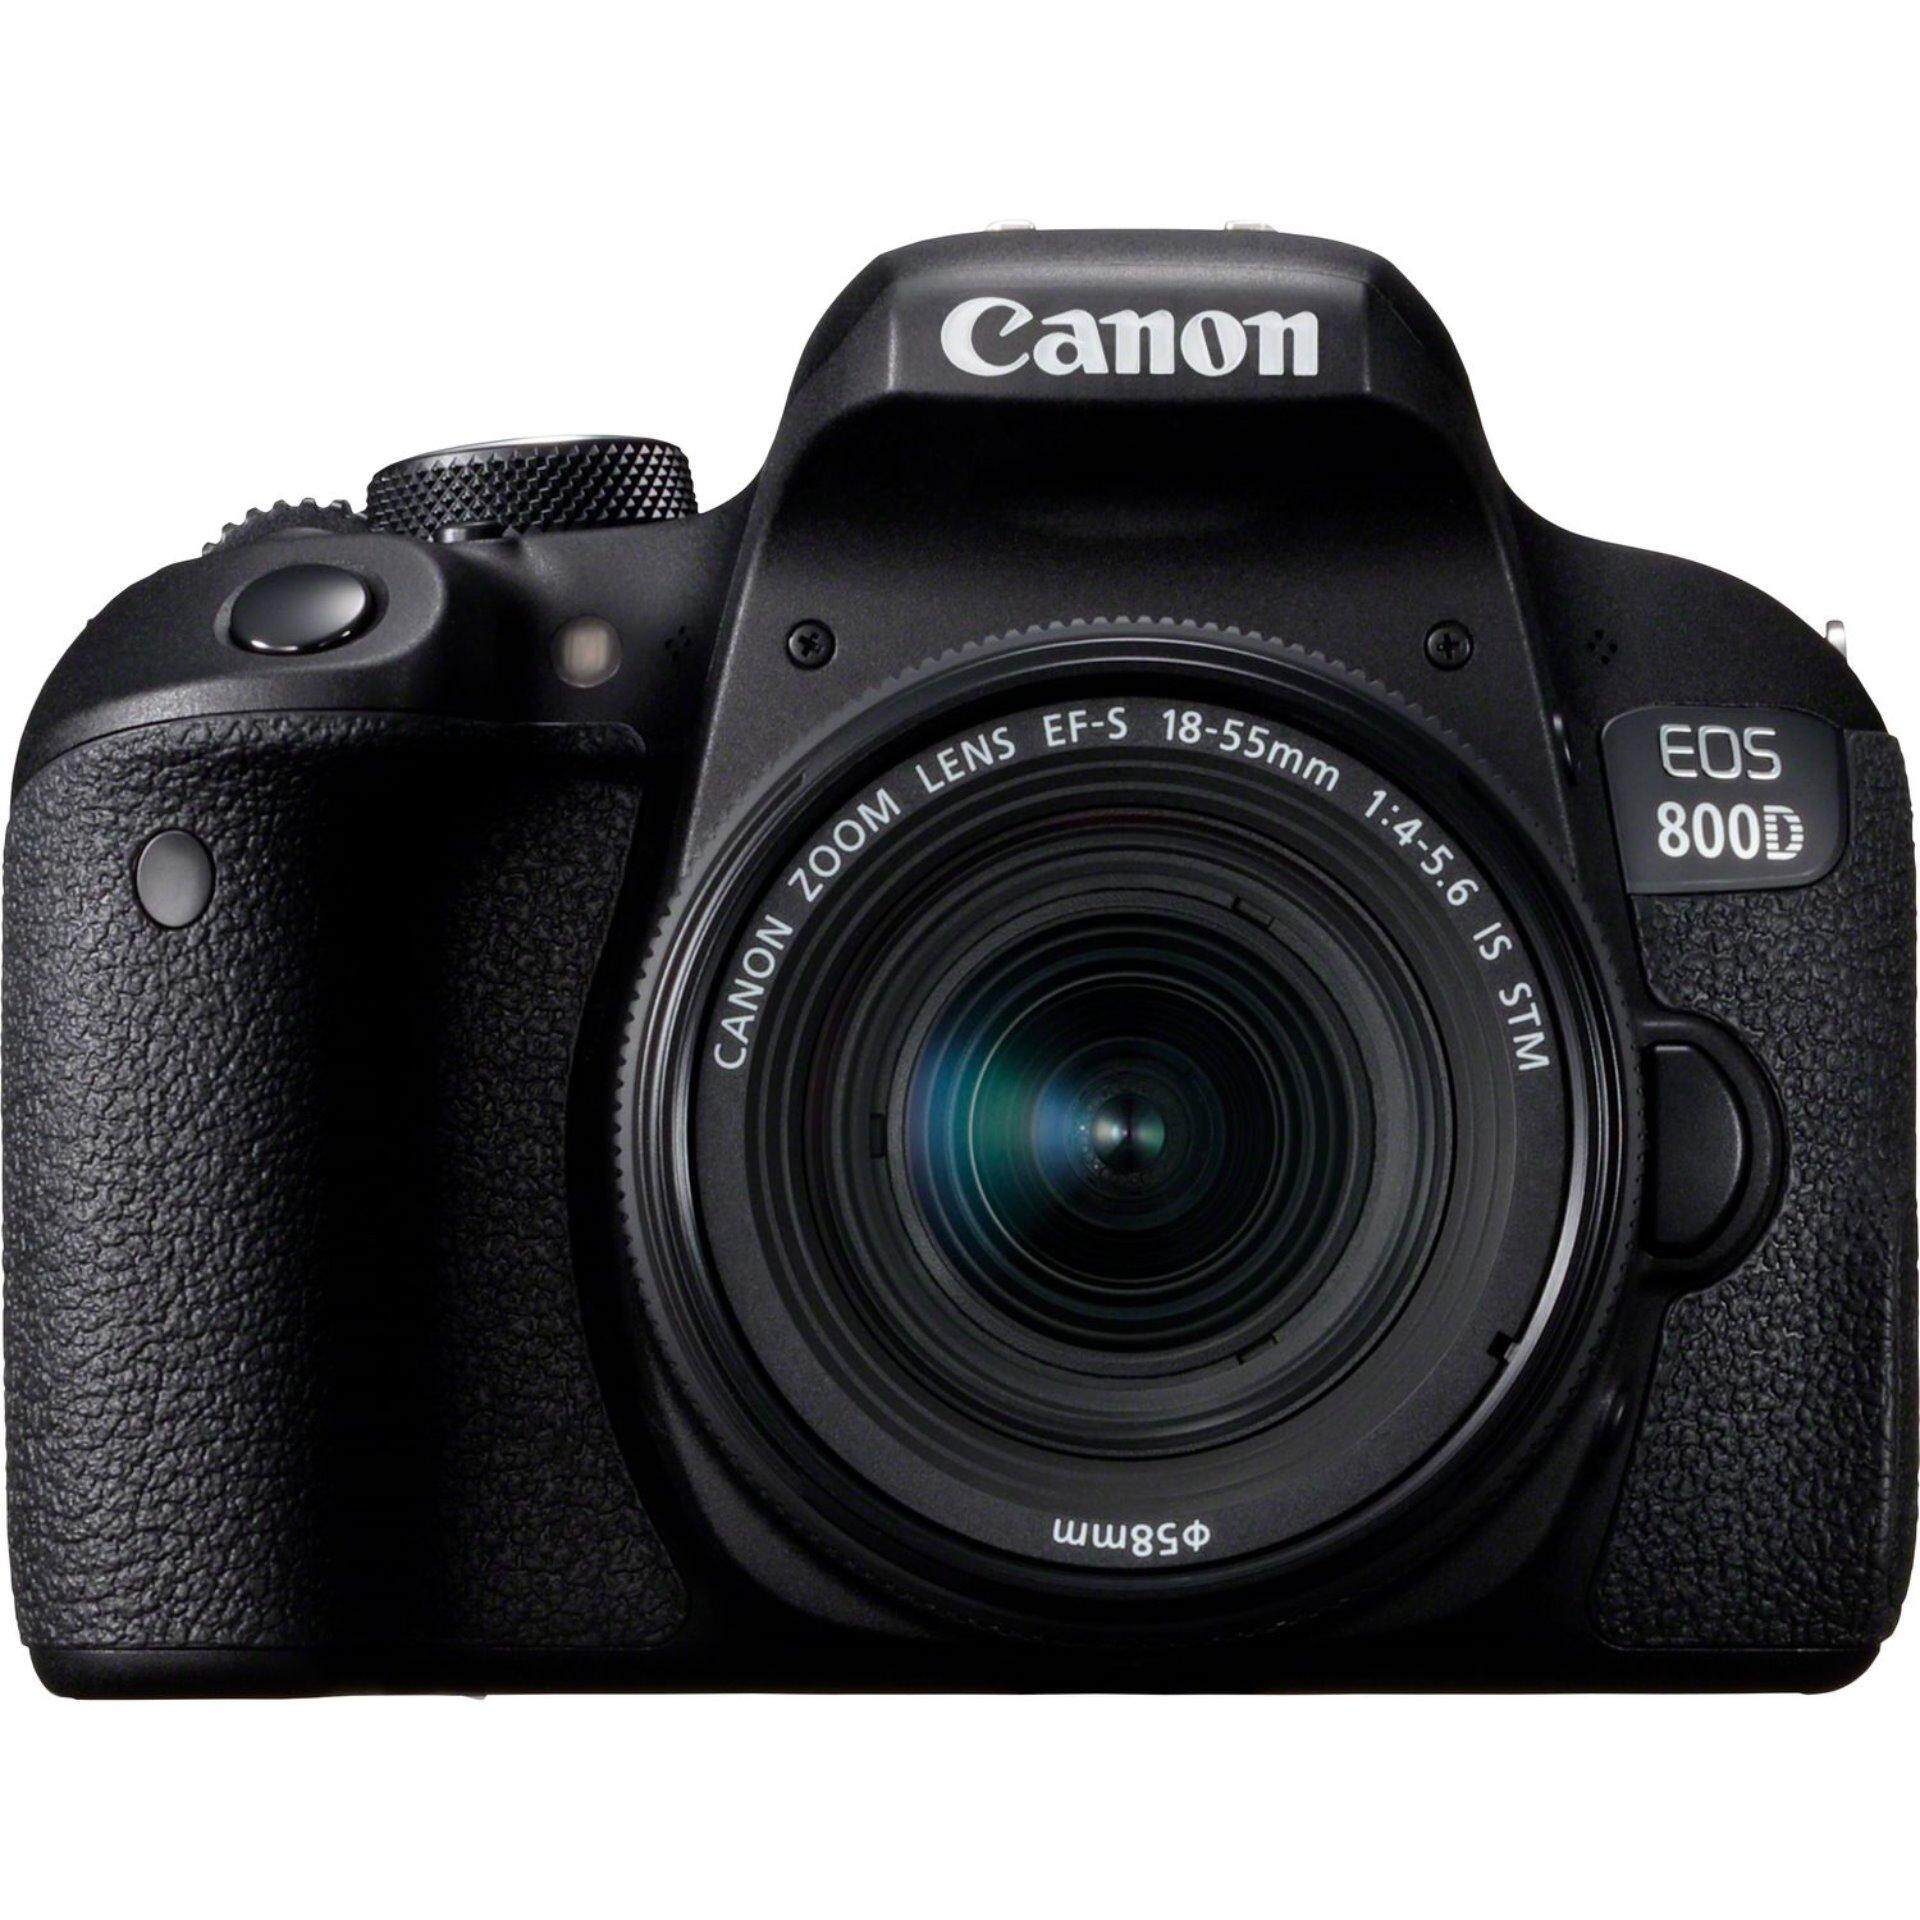 Canon EOS 800D DSLR Camera with 18-55mm IS STM Lens